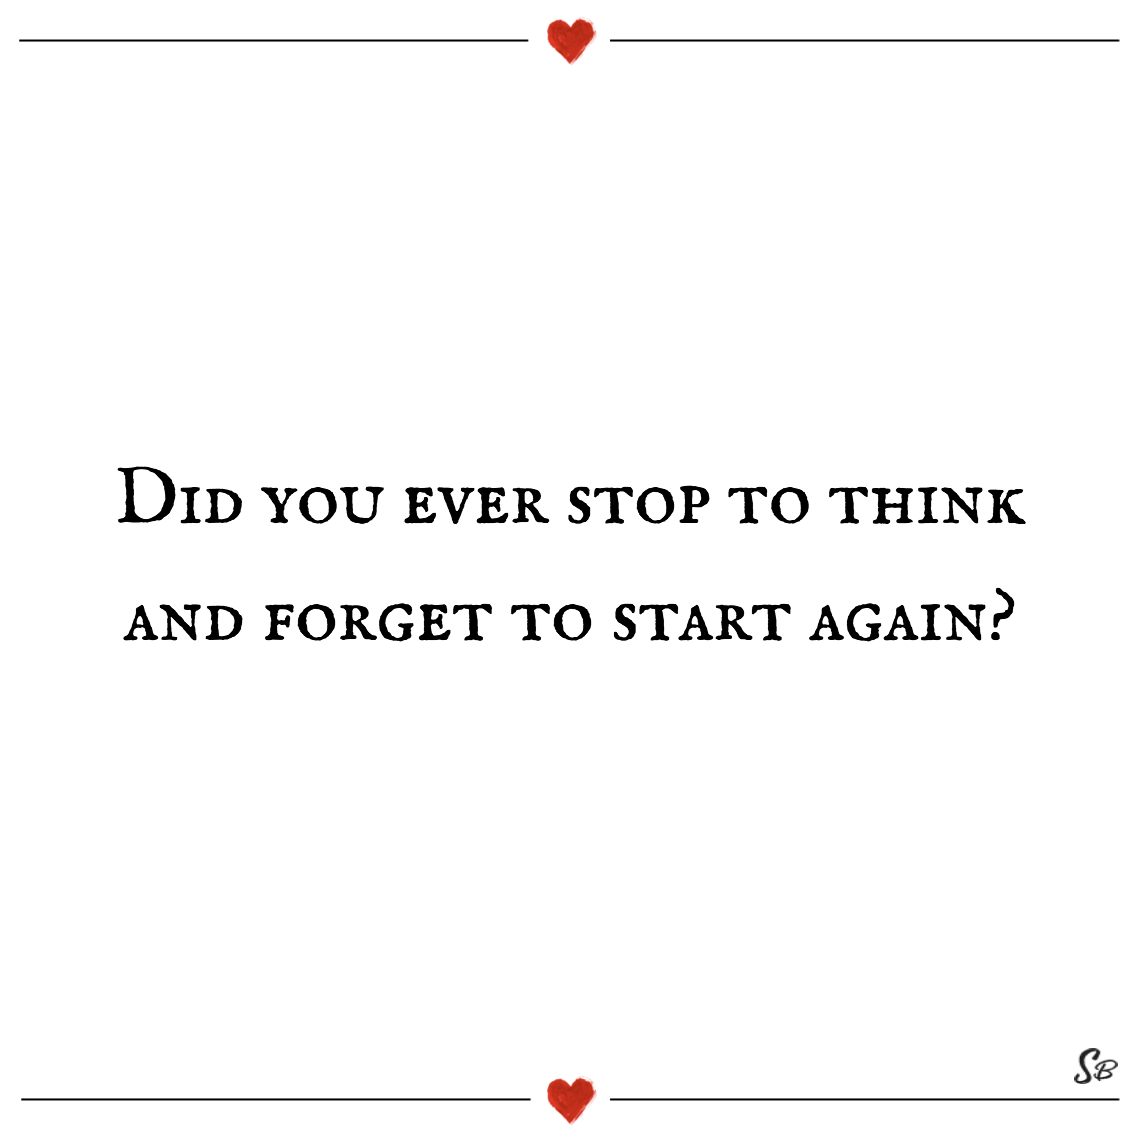 Did you ever stop to think and forget to start again